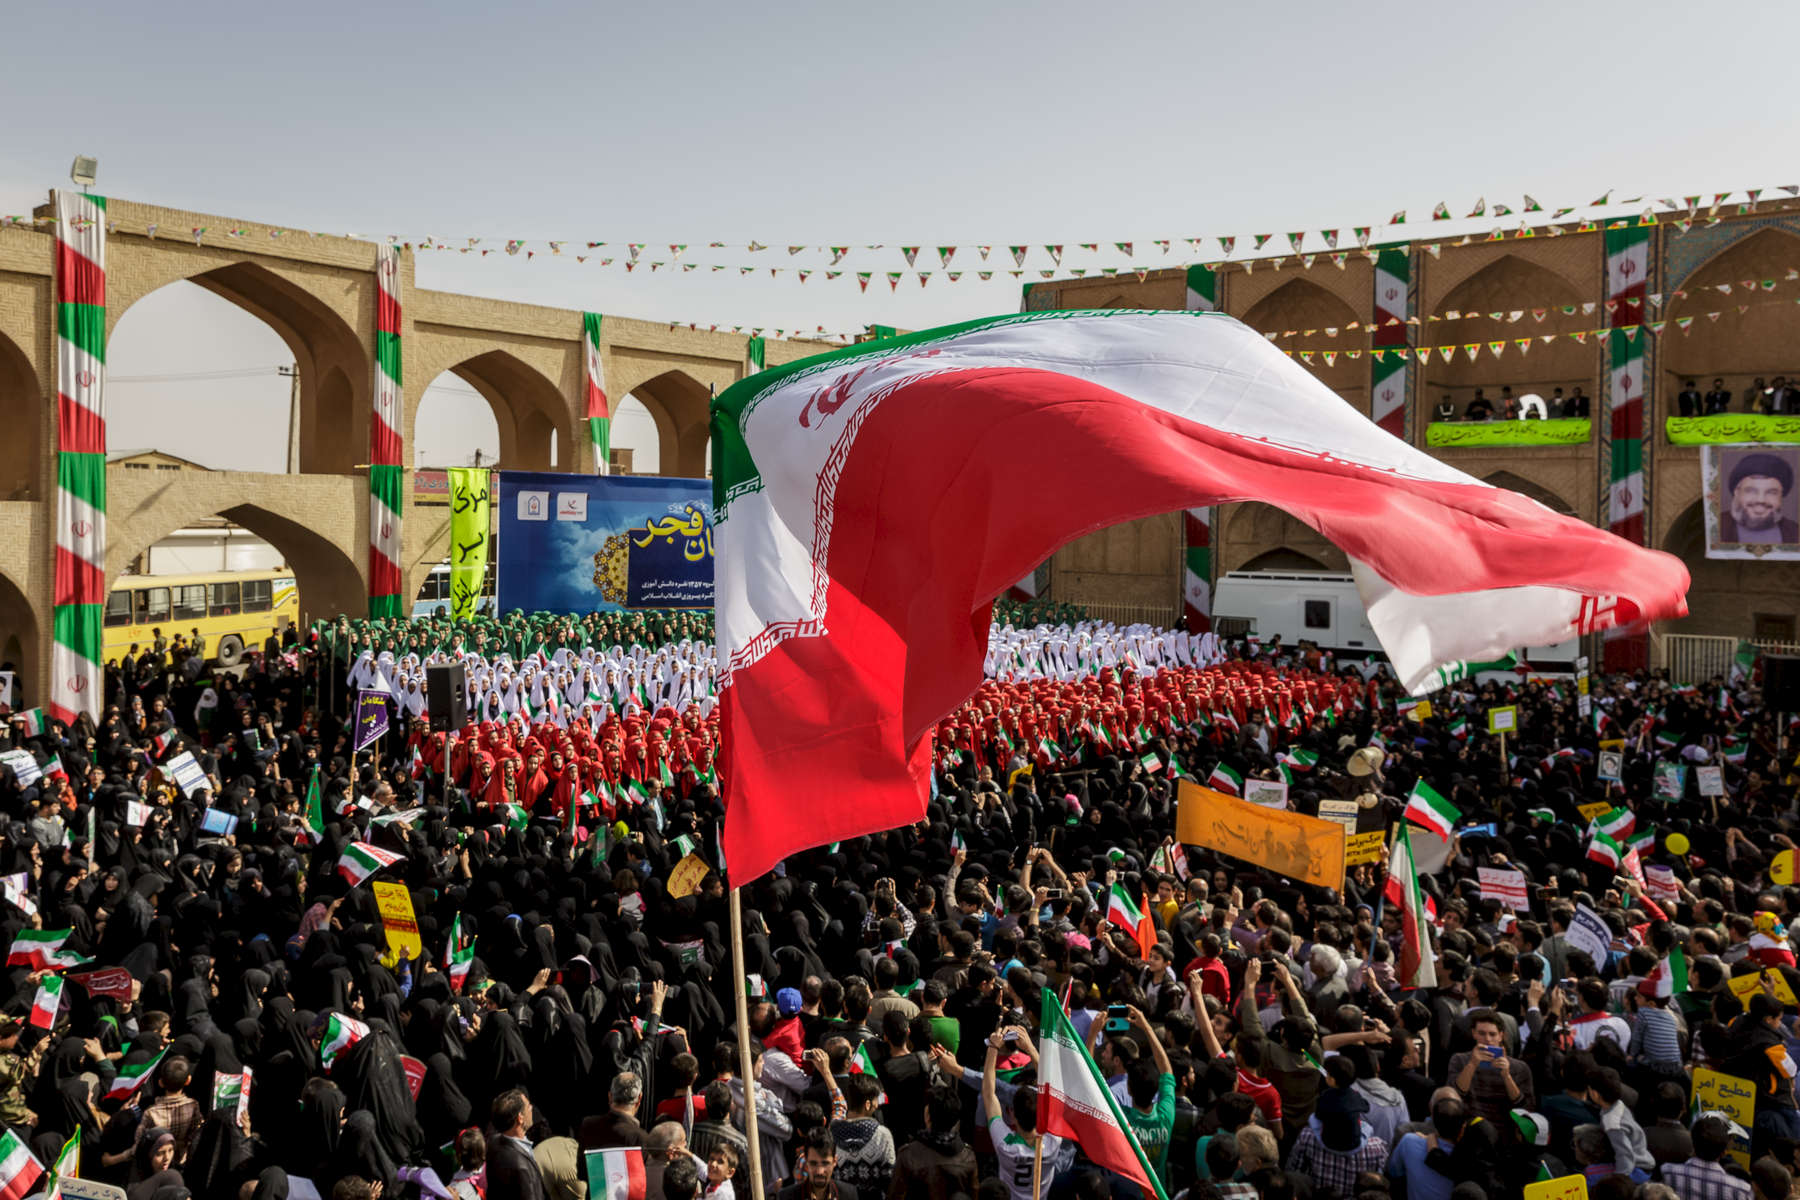 Large Iranian national flag being flown in the town centre of the city of Yazd on Febuary 11th rallies in remberance of the 1979 Islamic revoloution.  The photographer was briefly allowed onto a platform overlooking the crowd, which officals estimated at around 20,000 people, just a small percentage of the one million strong population of the city.